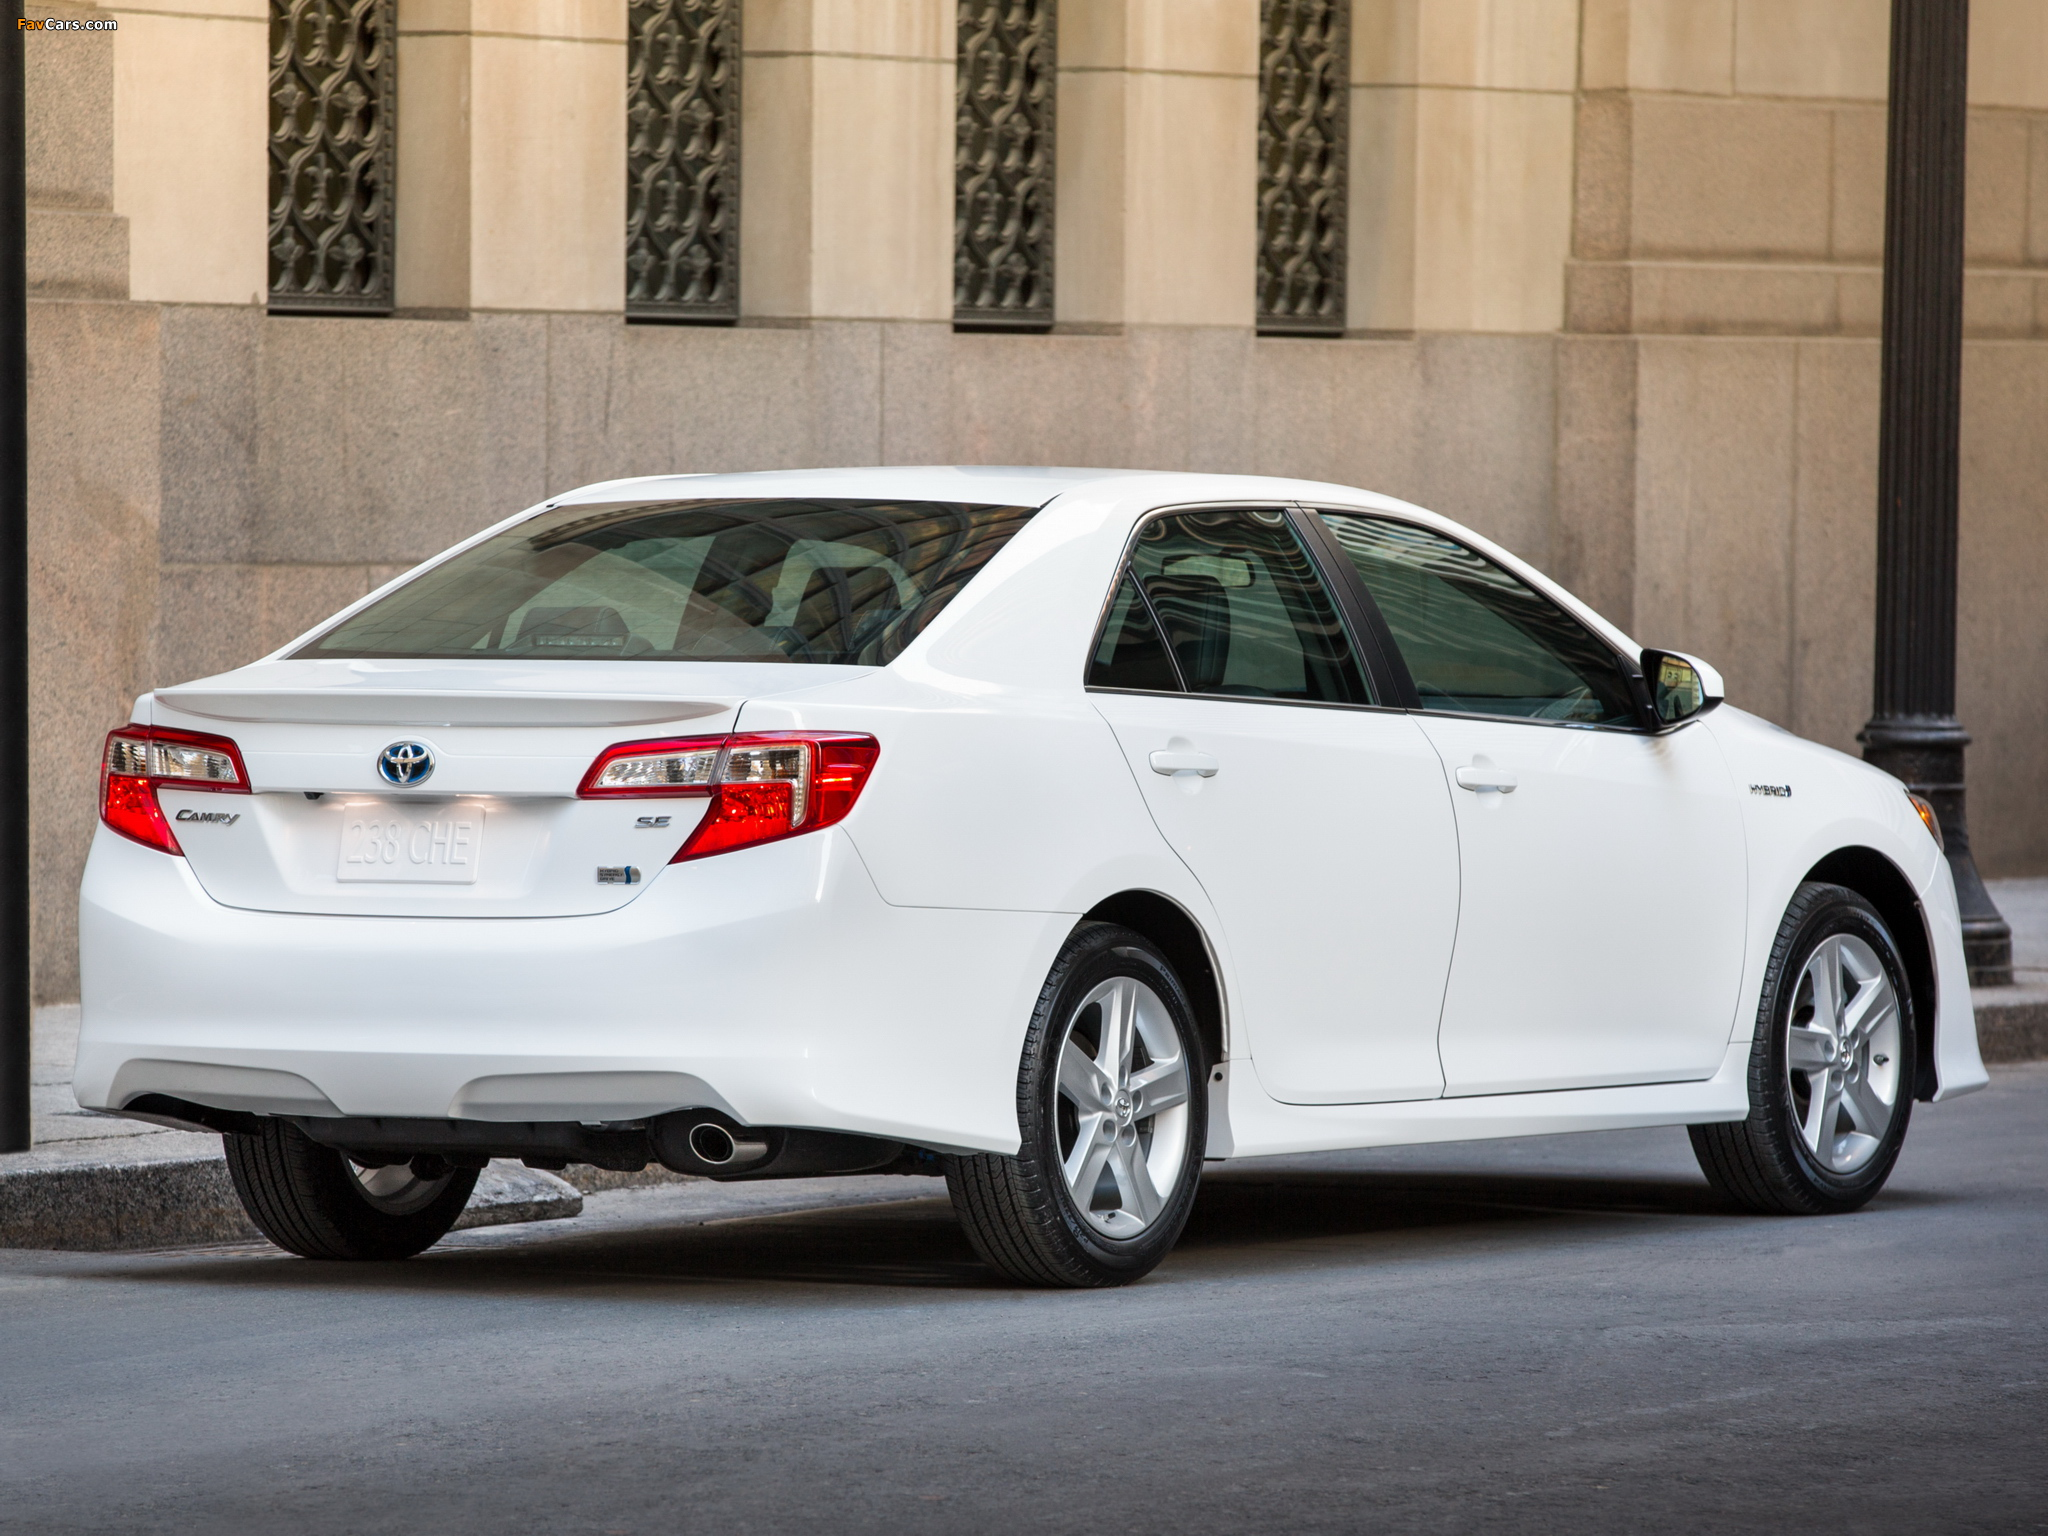 2014 Toyota Camry Specs, Pictures, Trims, Colors || Cars.com